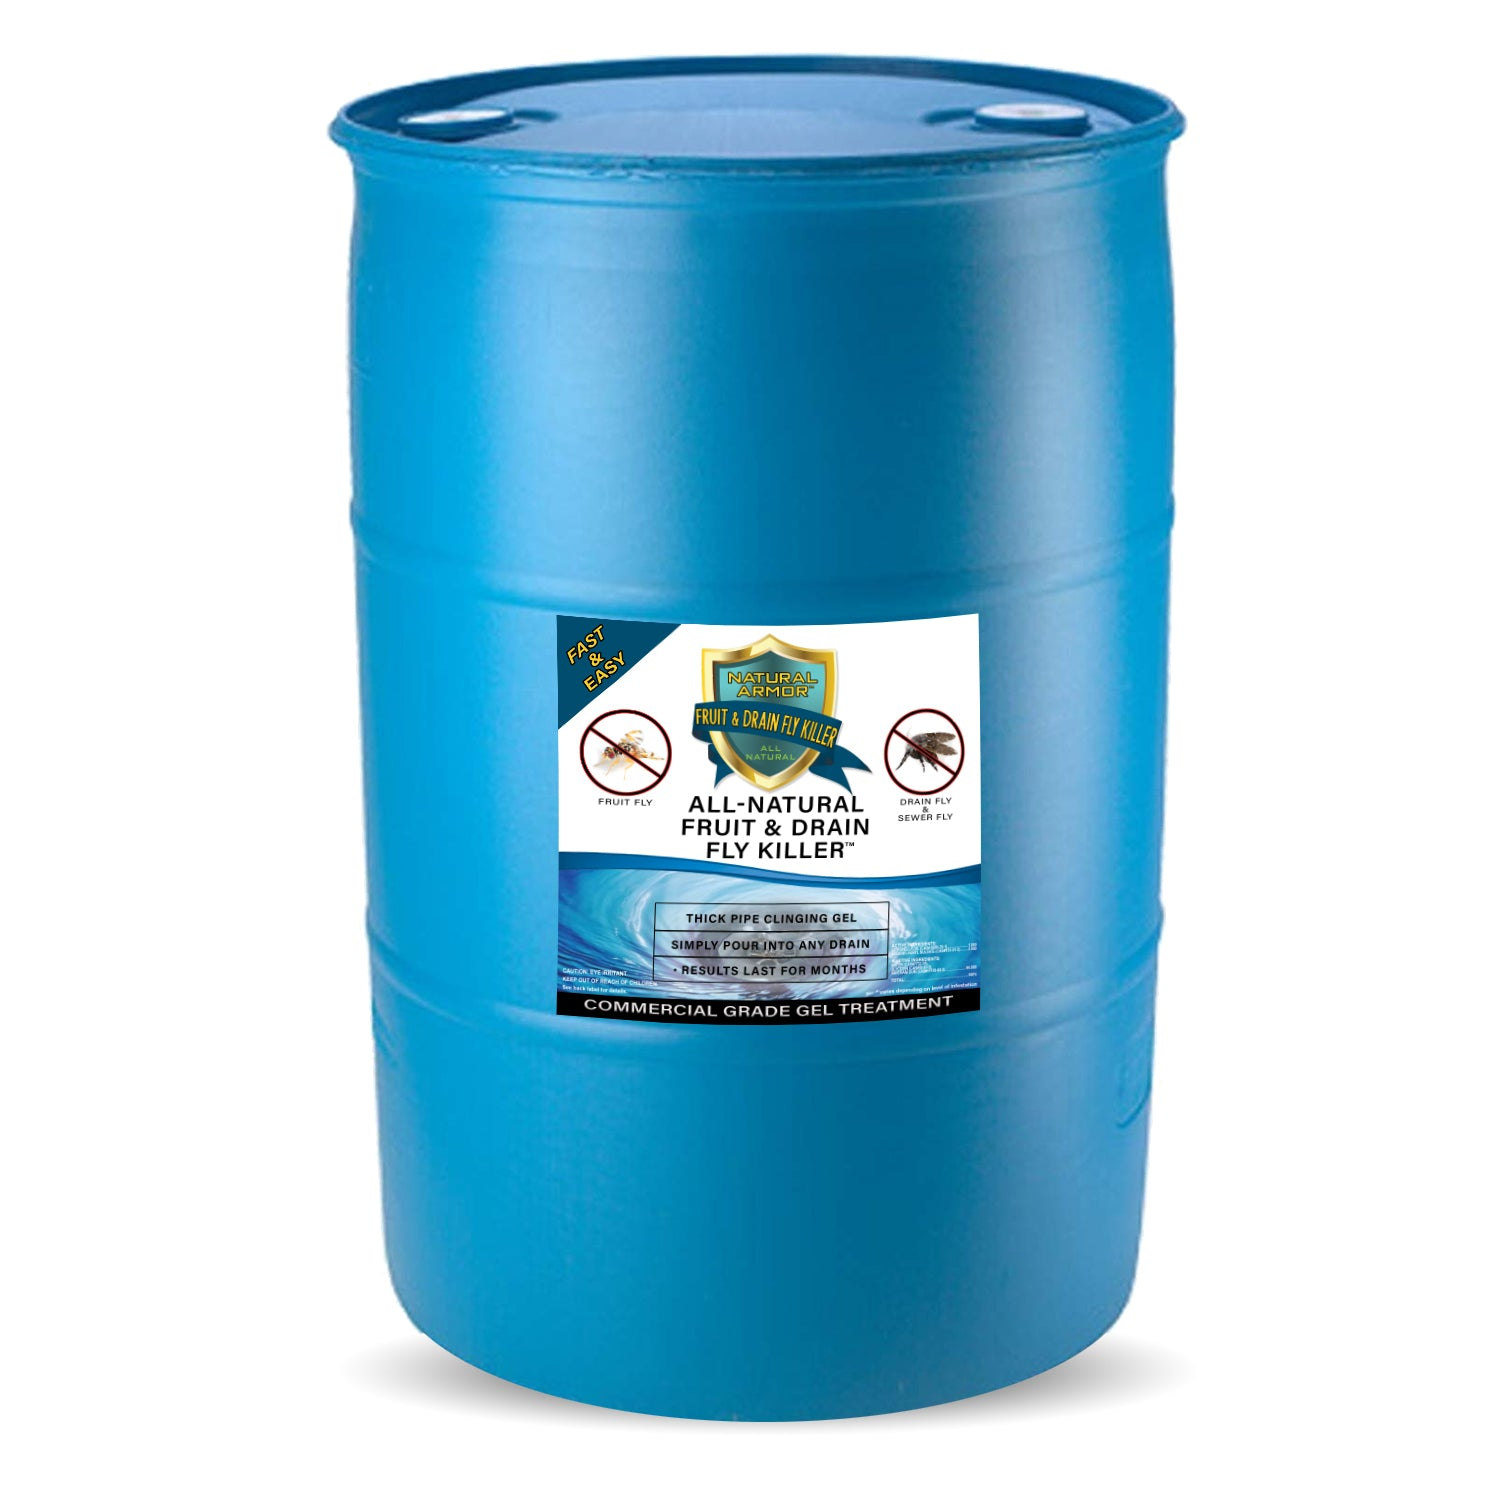 Fruit & Drain Fly Killer (1) 30 Gallon Drum